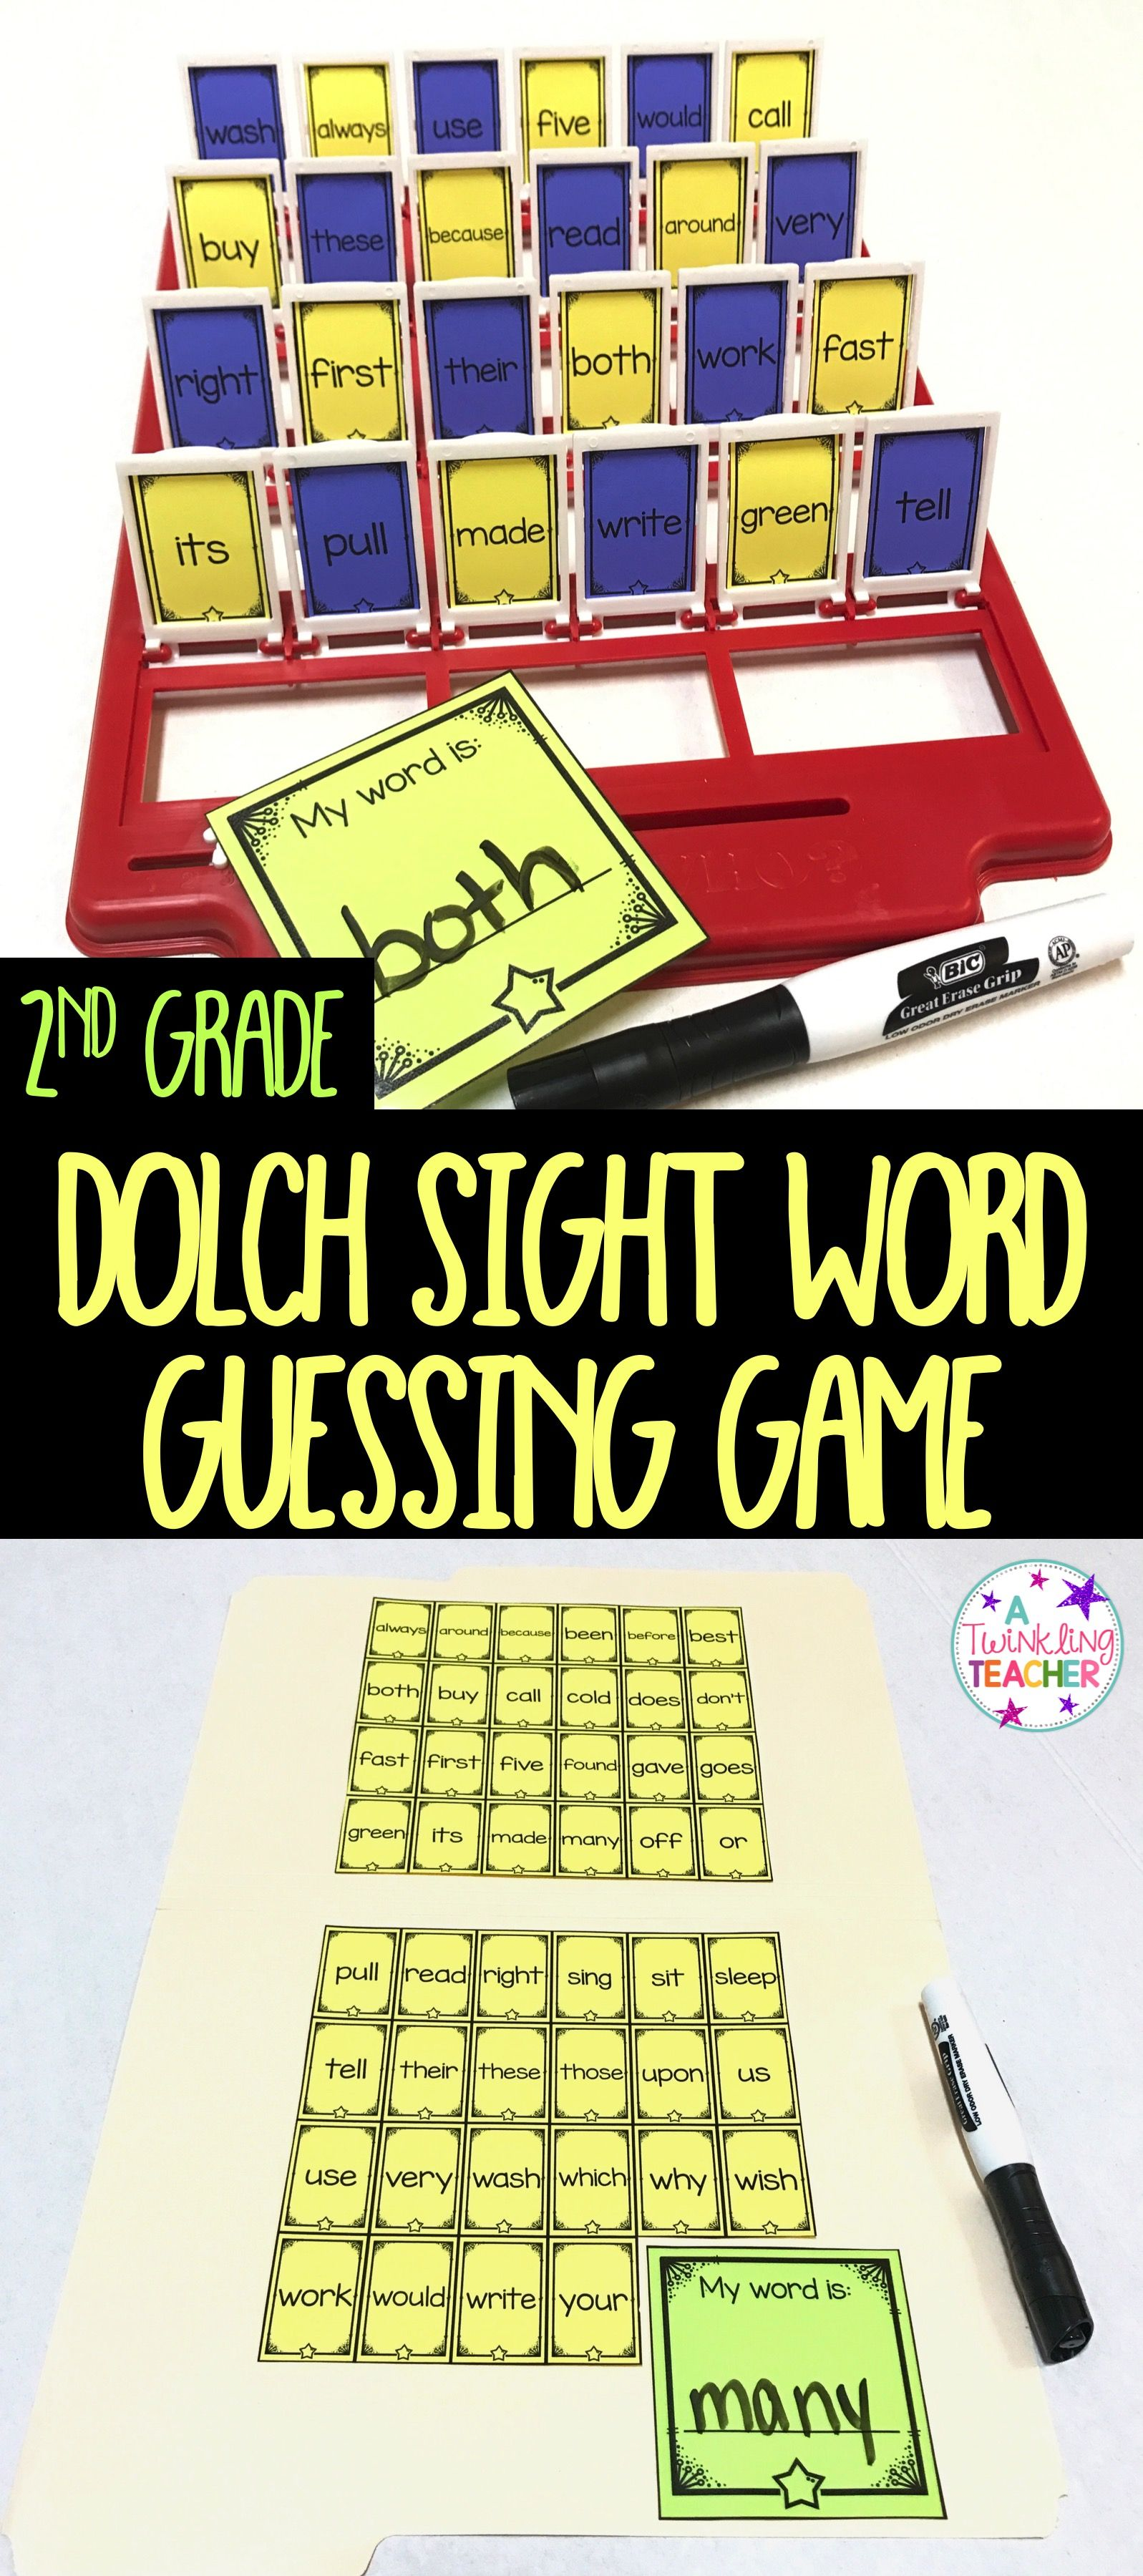 Second Grade Dolch Sight Word Guessing Game Sight word